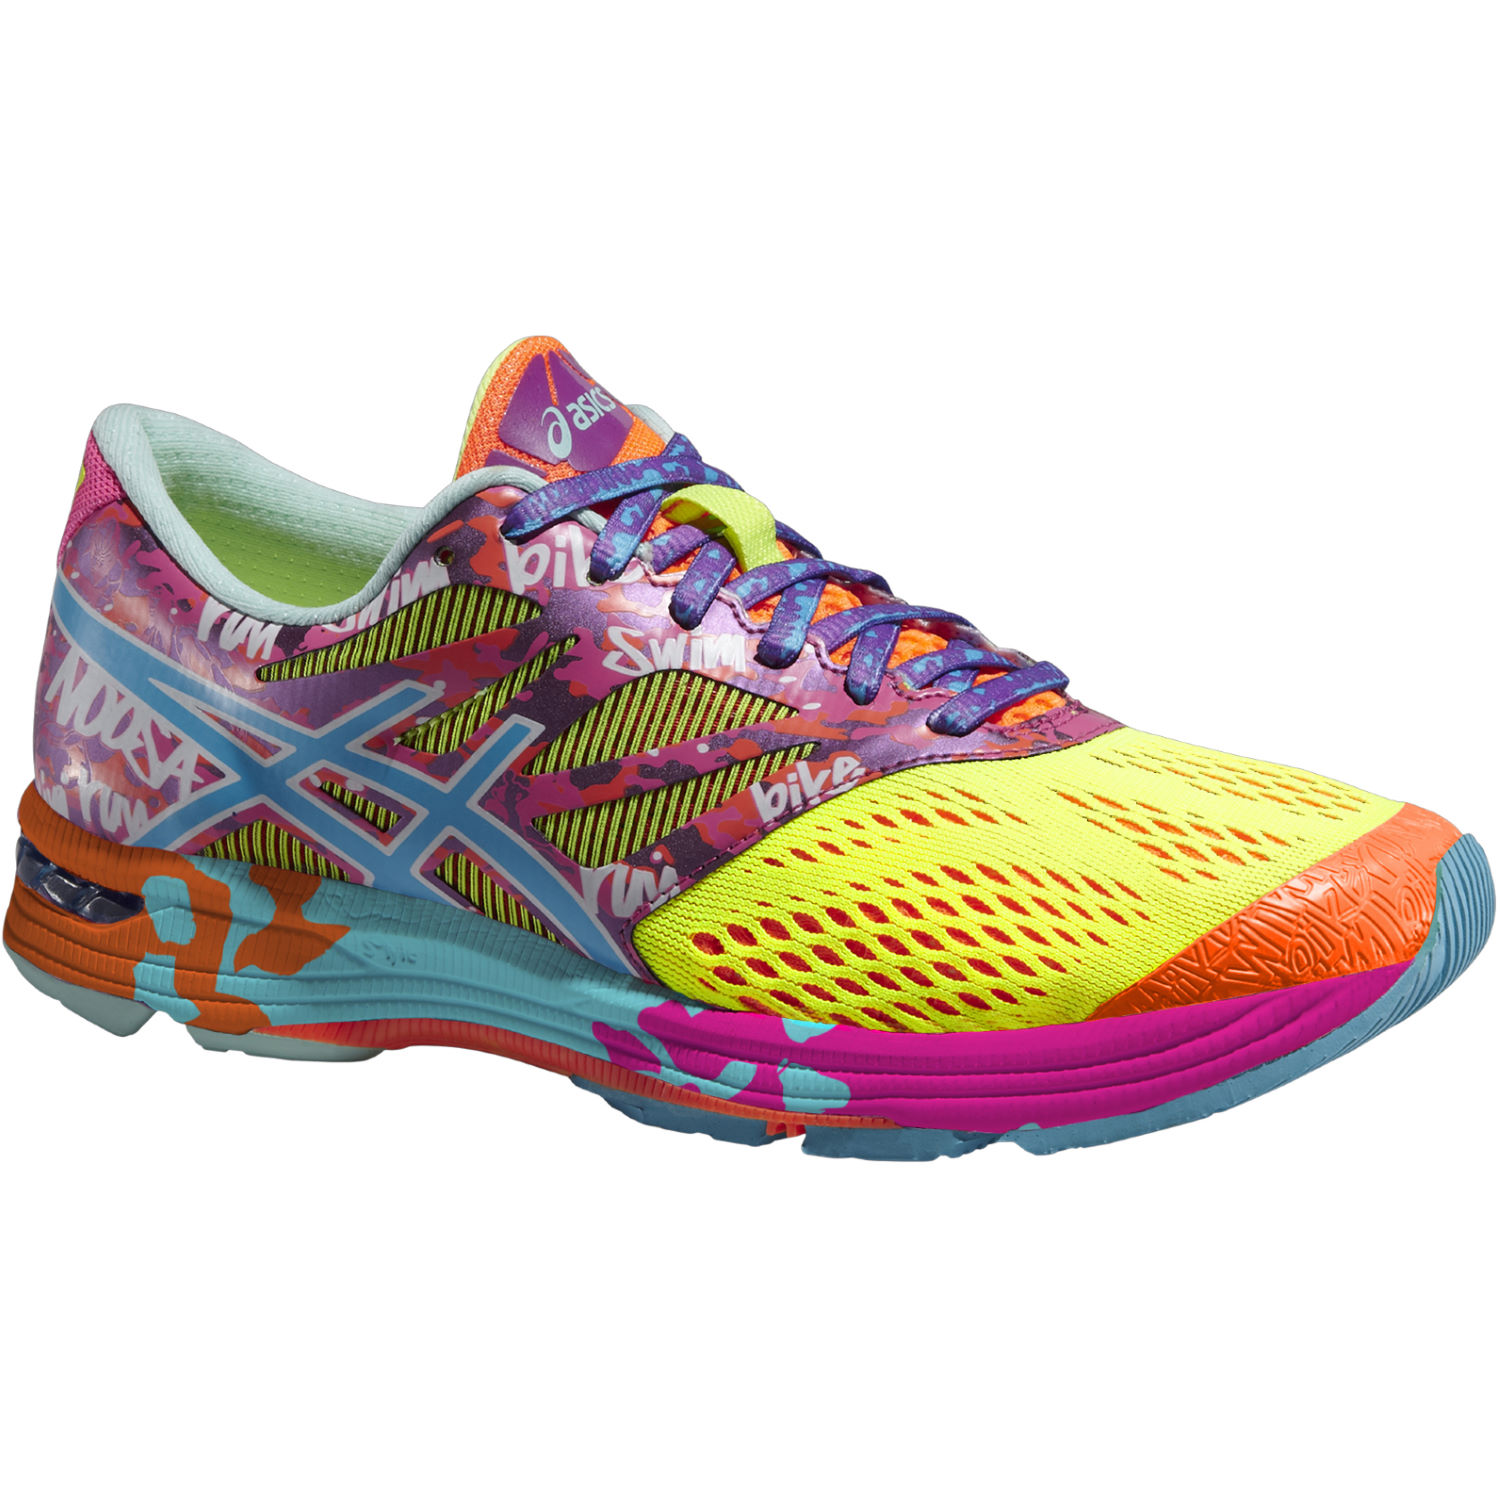 Asics Women's Gel-Noosa Tri 10 Shoes - SS15